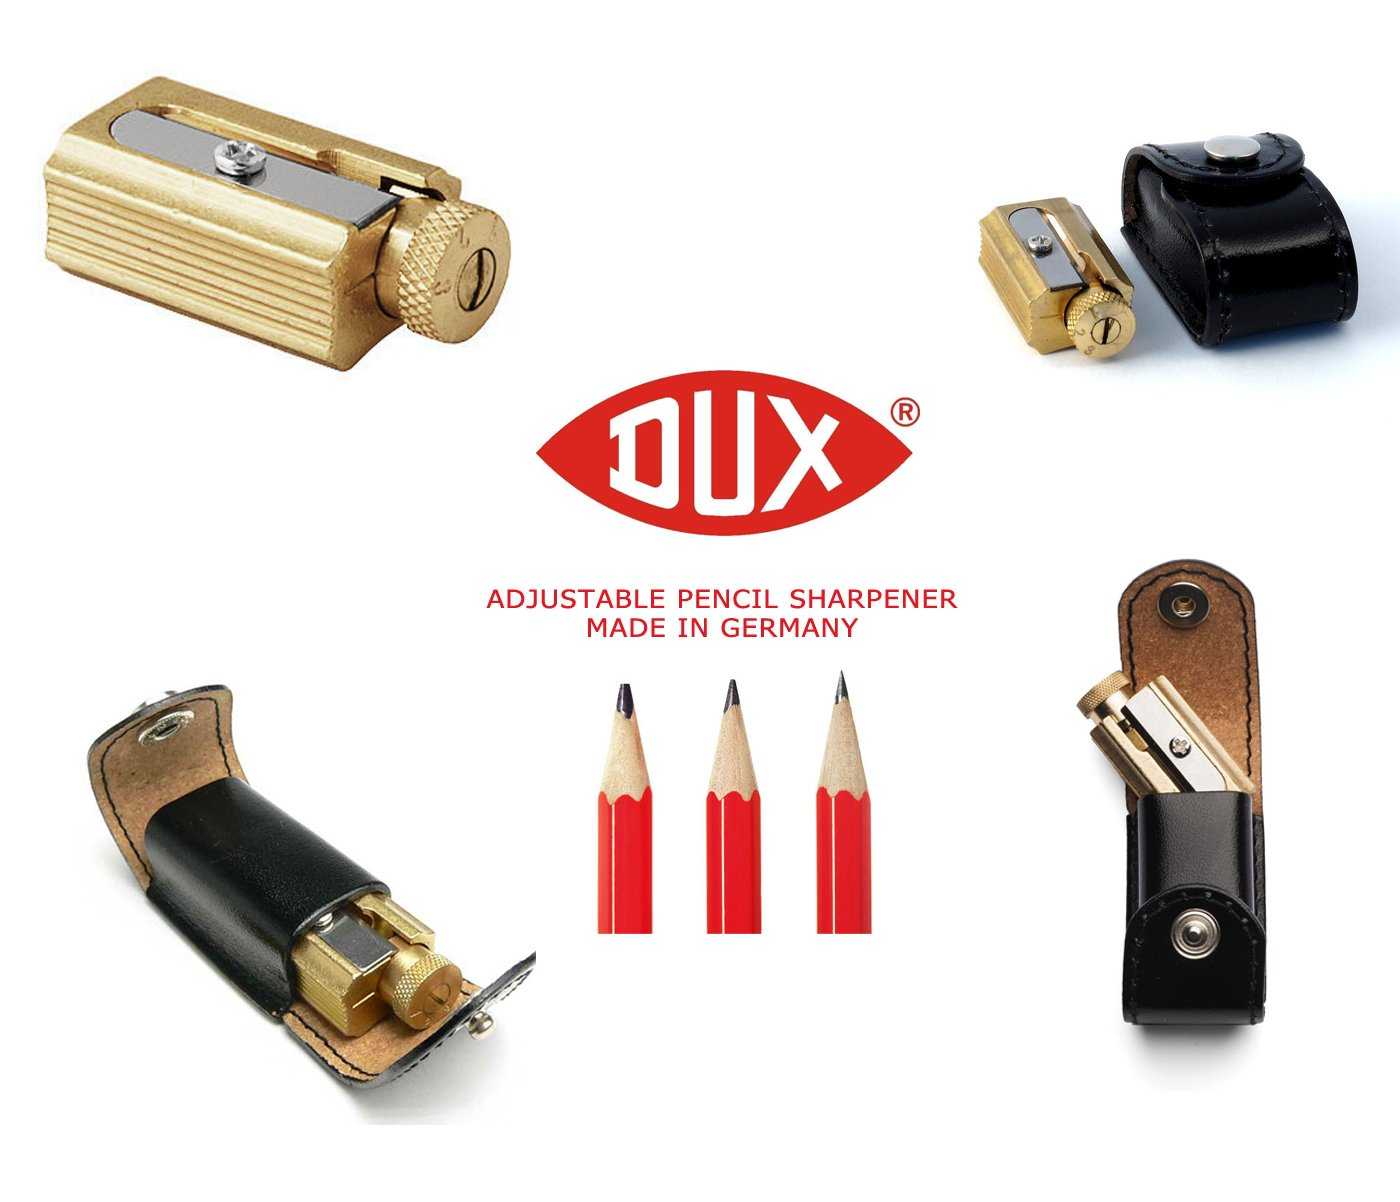 Legendary DUX Adjustable Pencil Sharpener - brass in a genuine leather case - Made in Germany by DUX (Image #1)